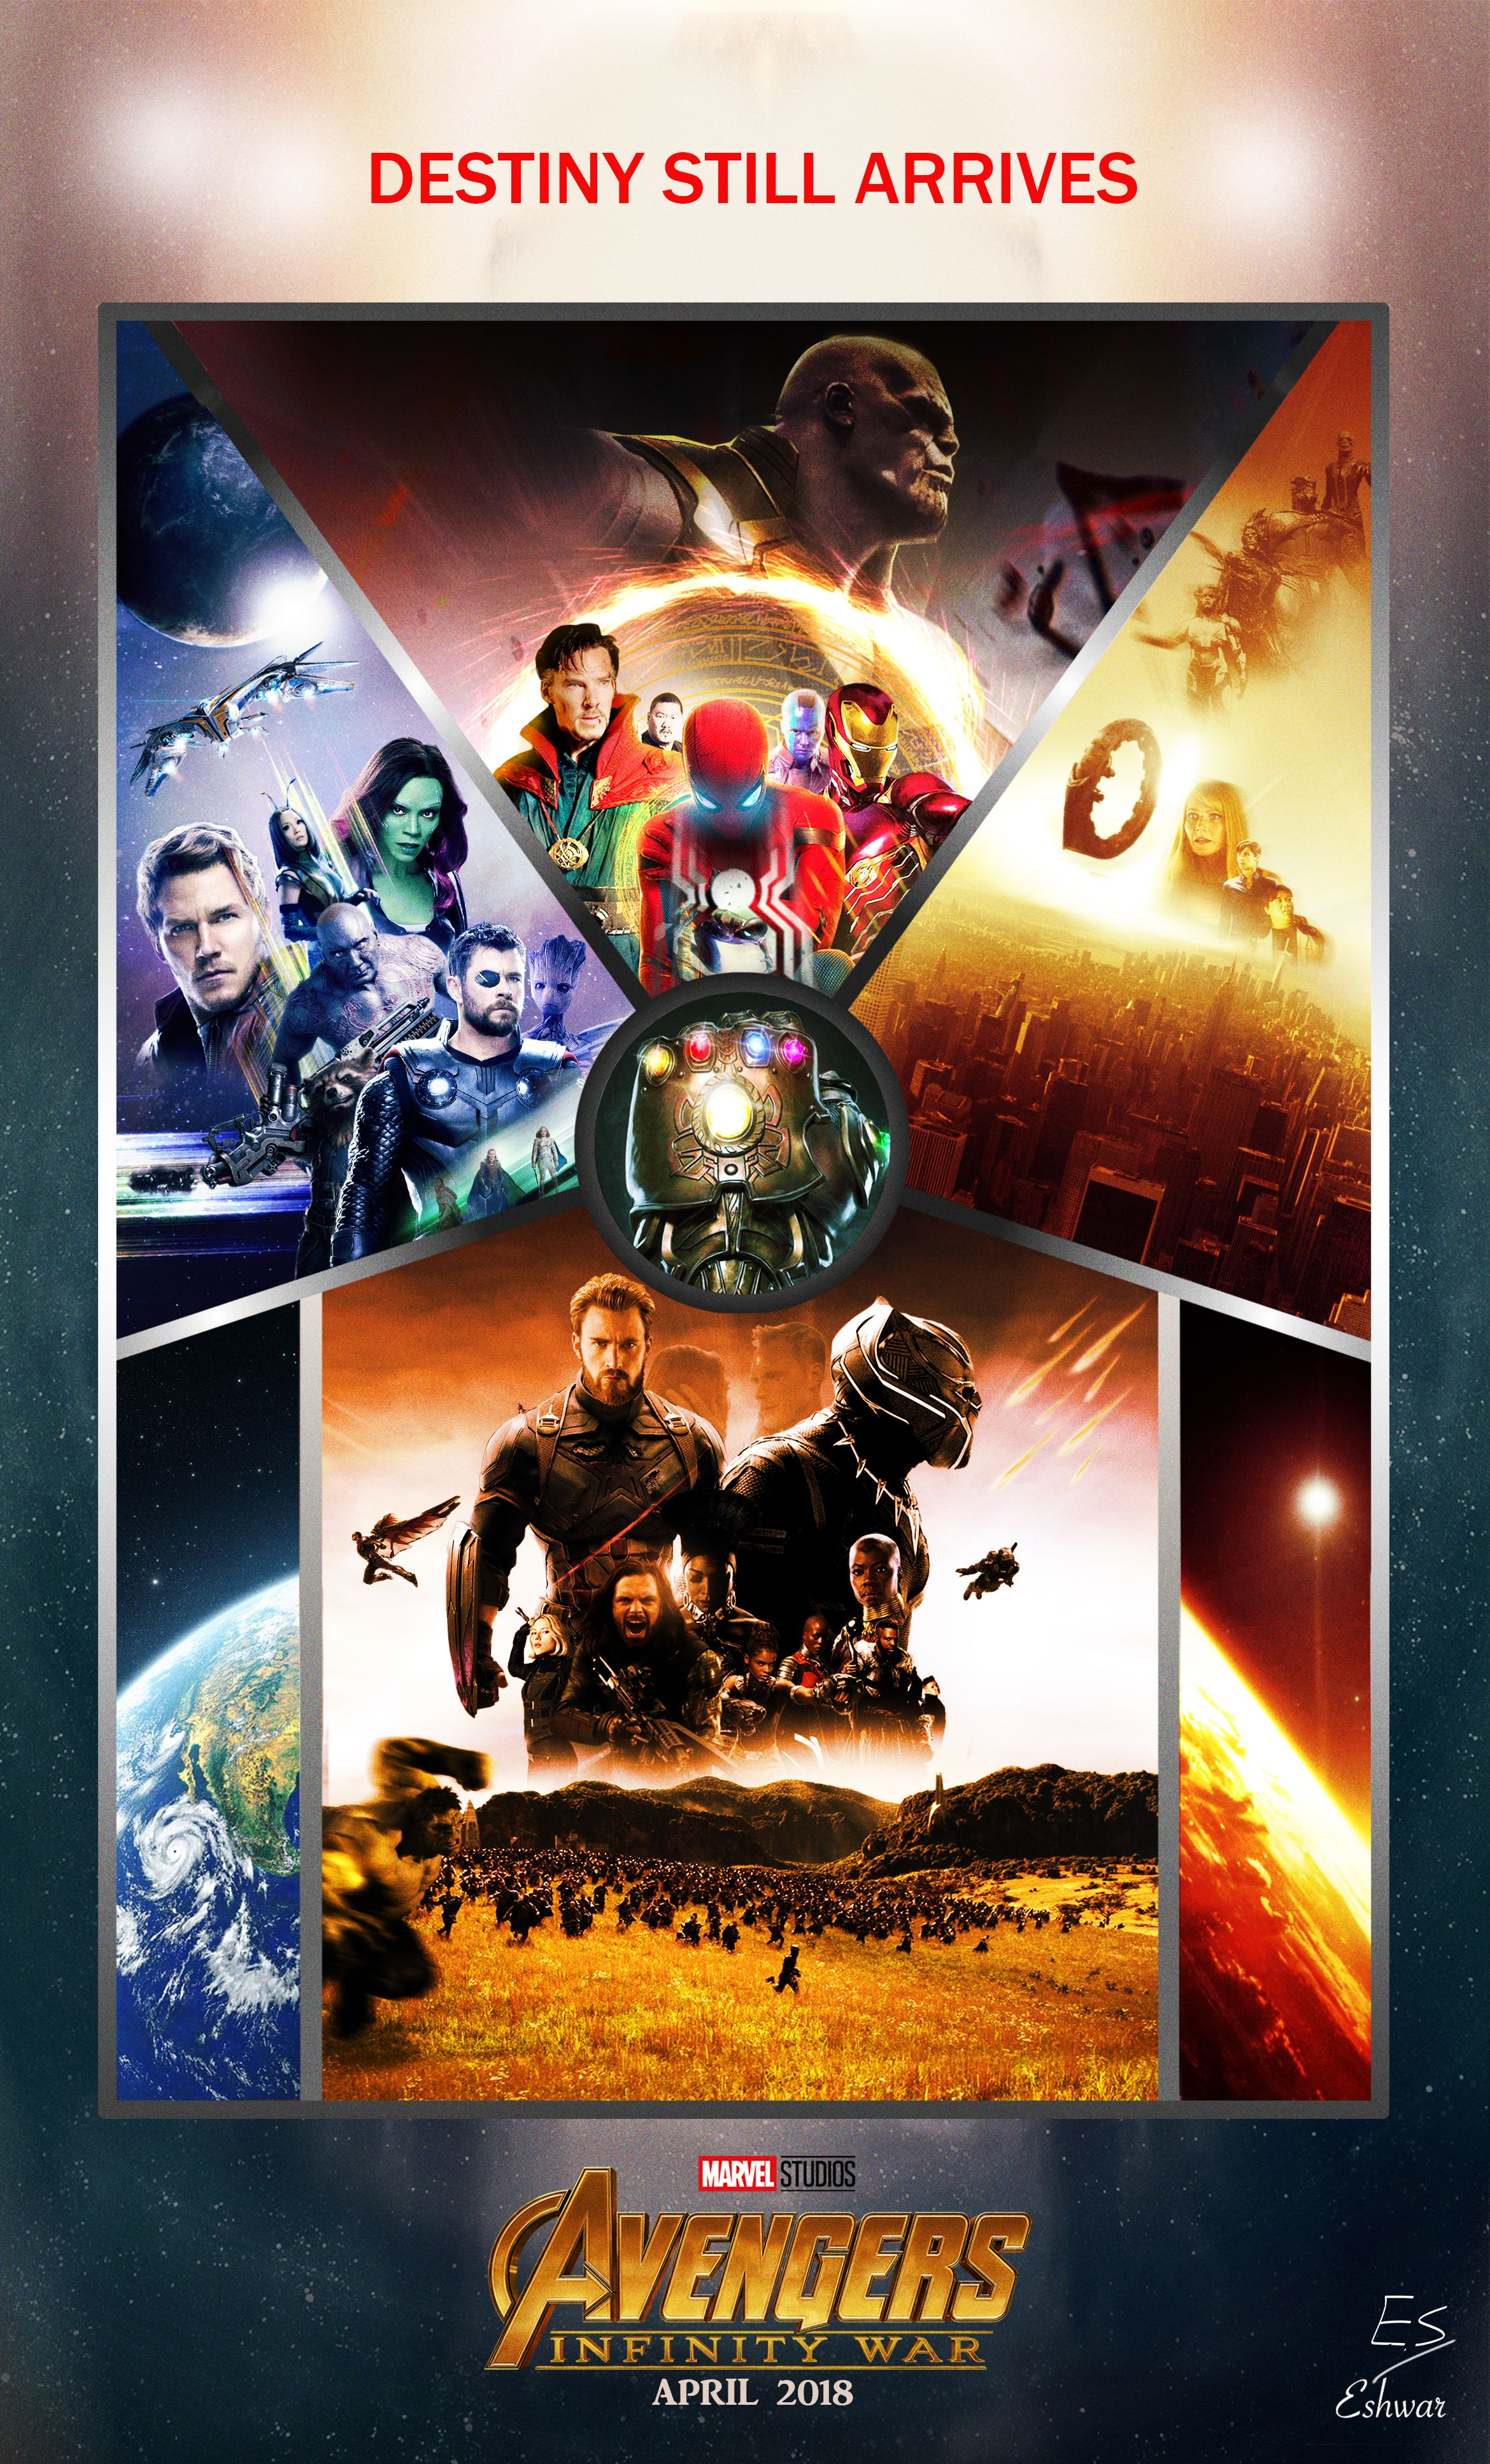 My Fanmade Avengers Infinity War Poster Avengers Avengers Infinity War Infinity War